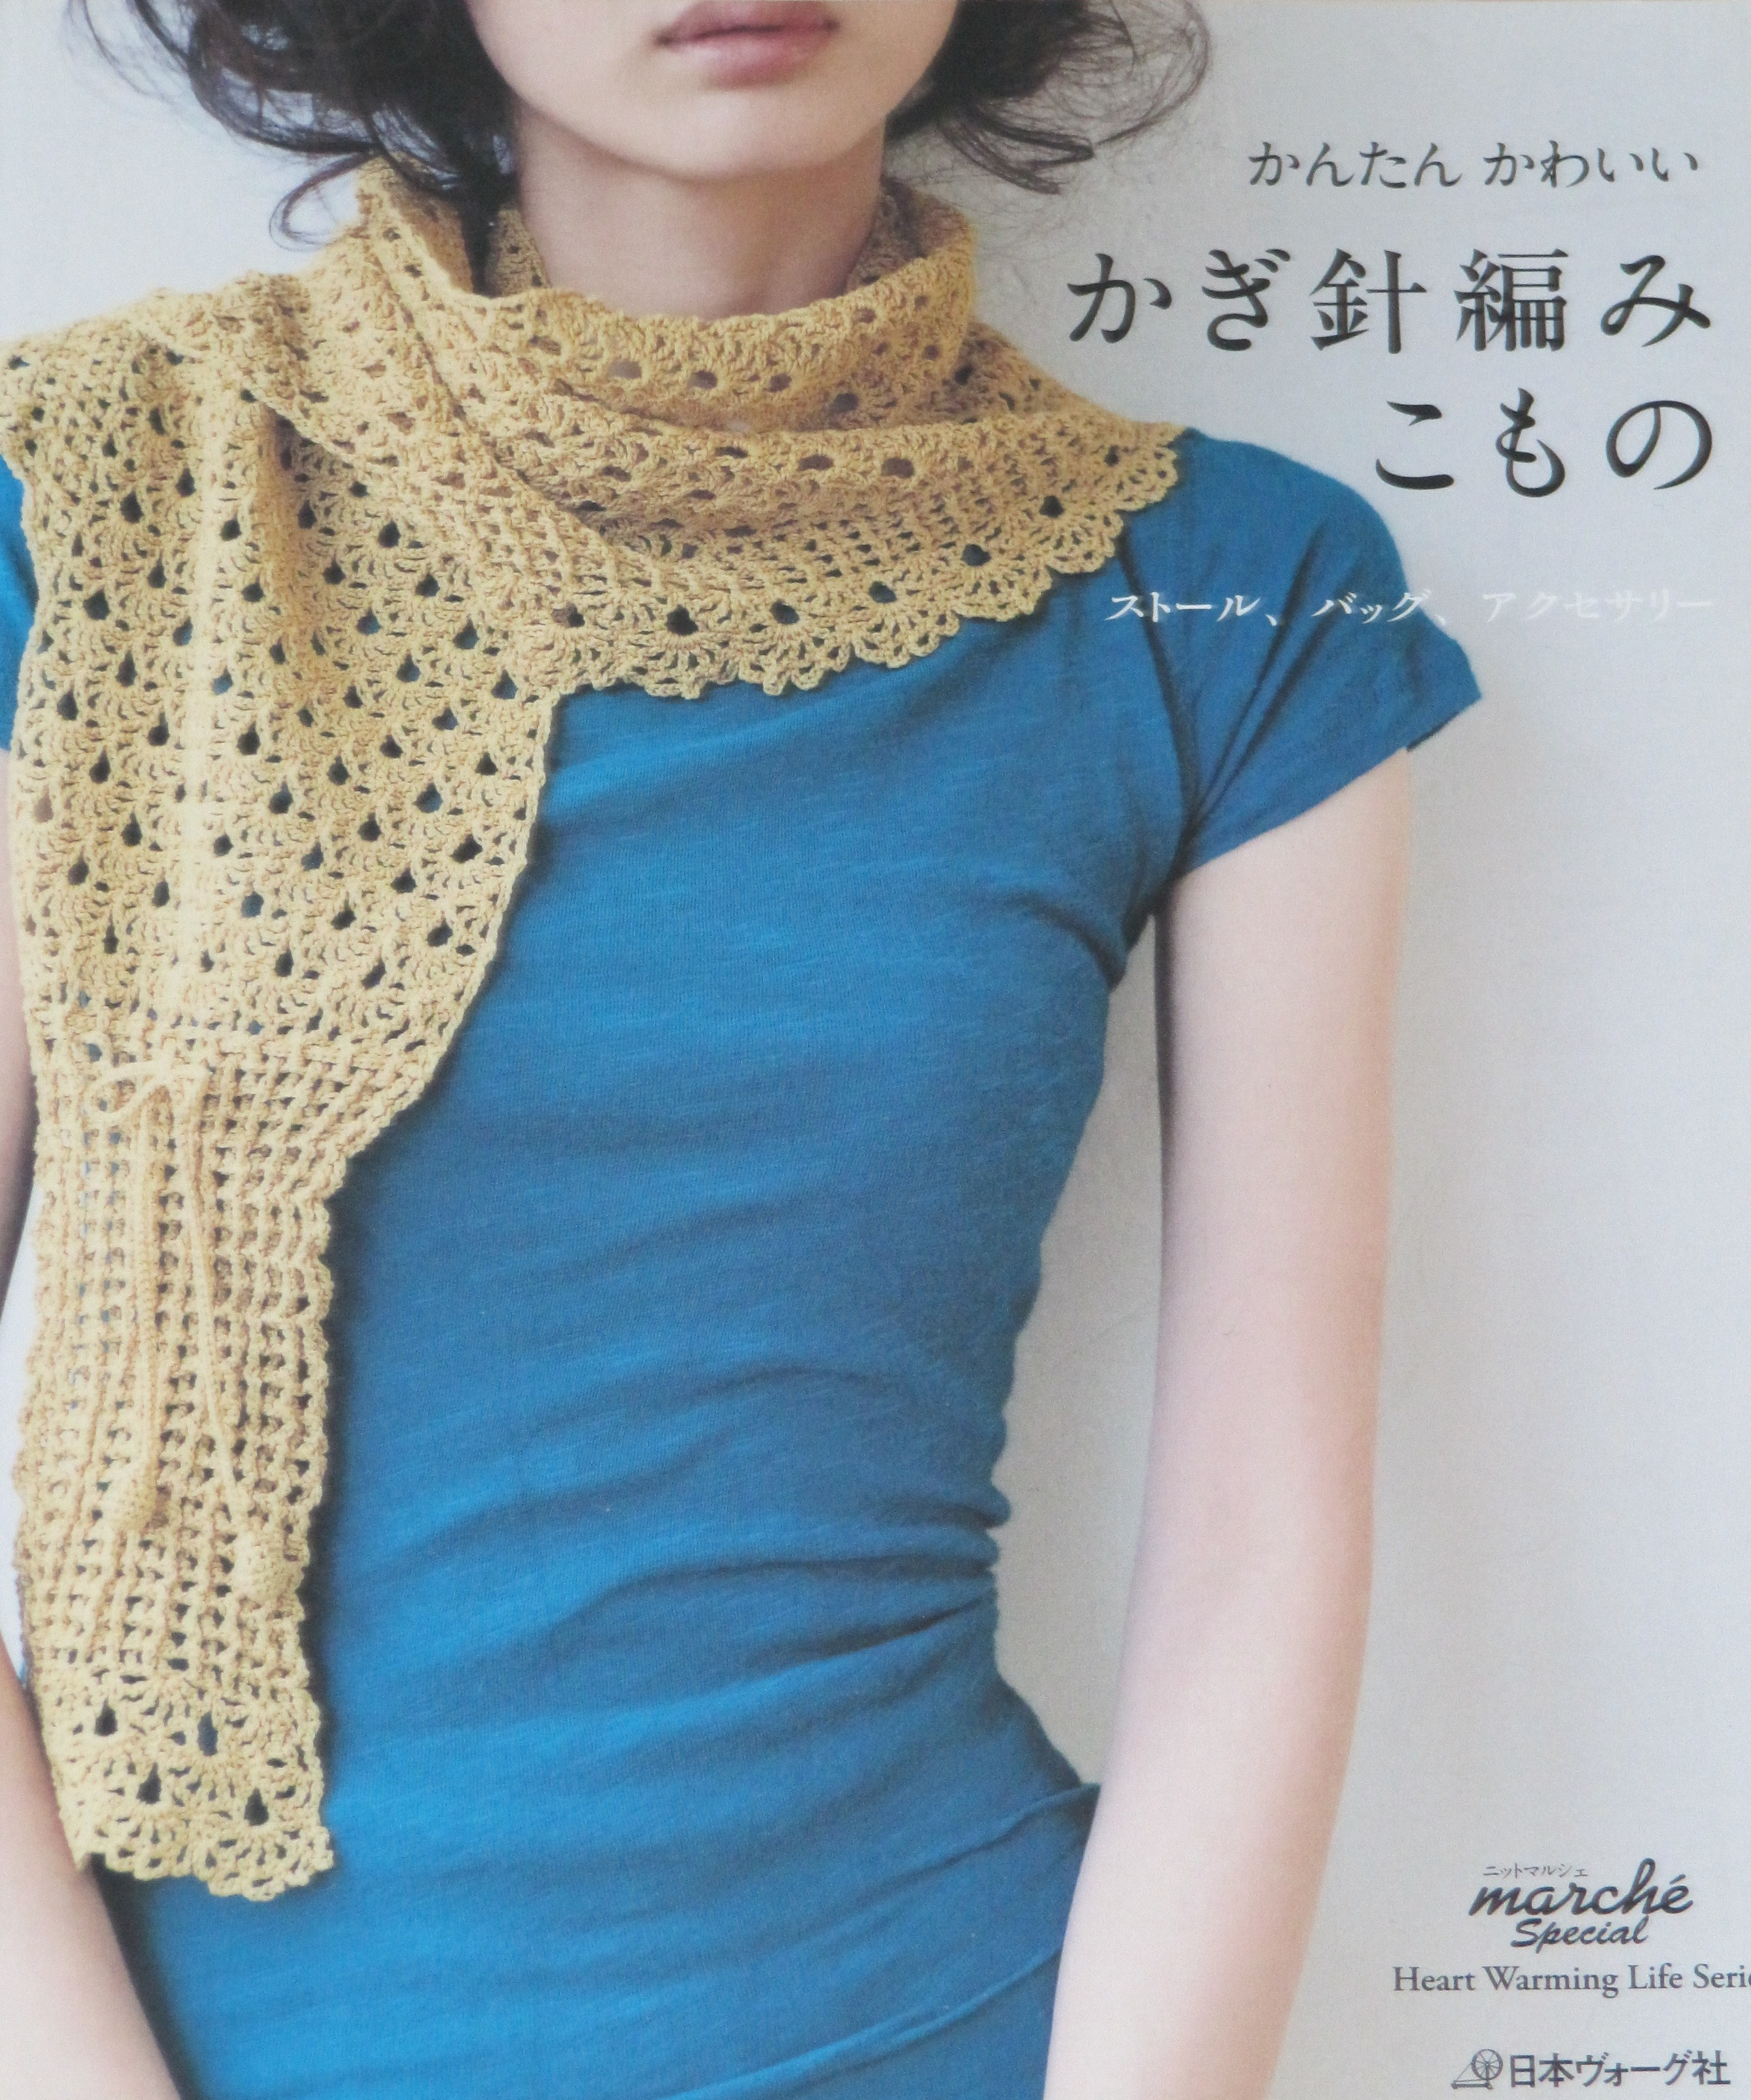 Japanese Knitting Patterns Free : Pin Books Crochet And Else Voglio Un Tatuaggio Aggio Do It on ... Images - Fr...